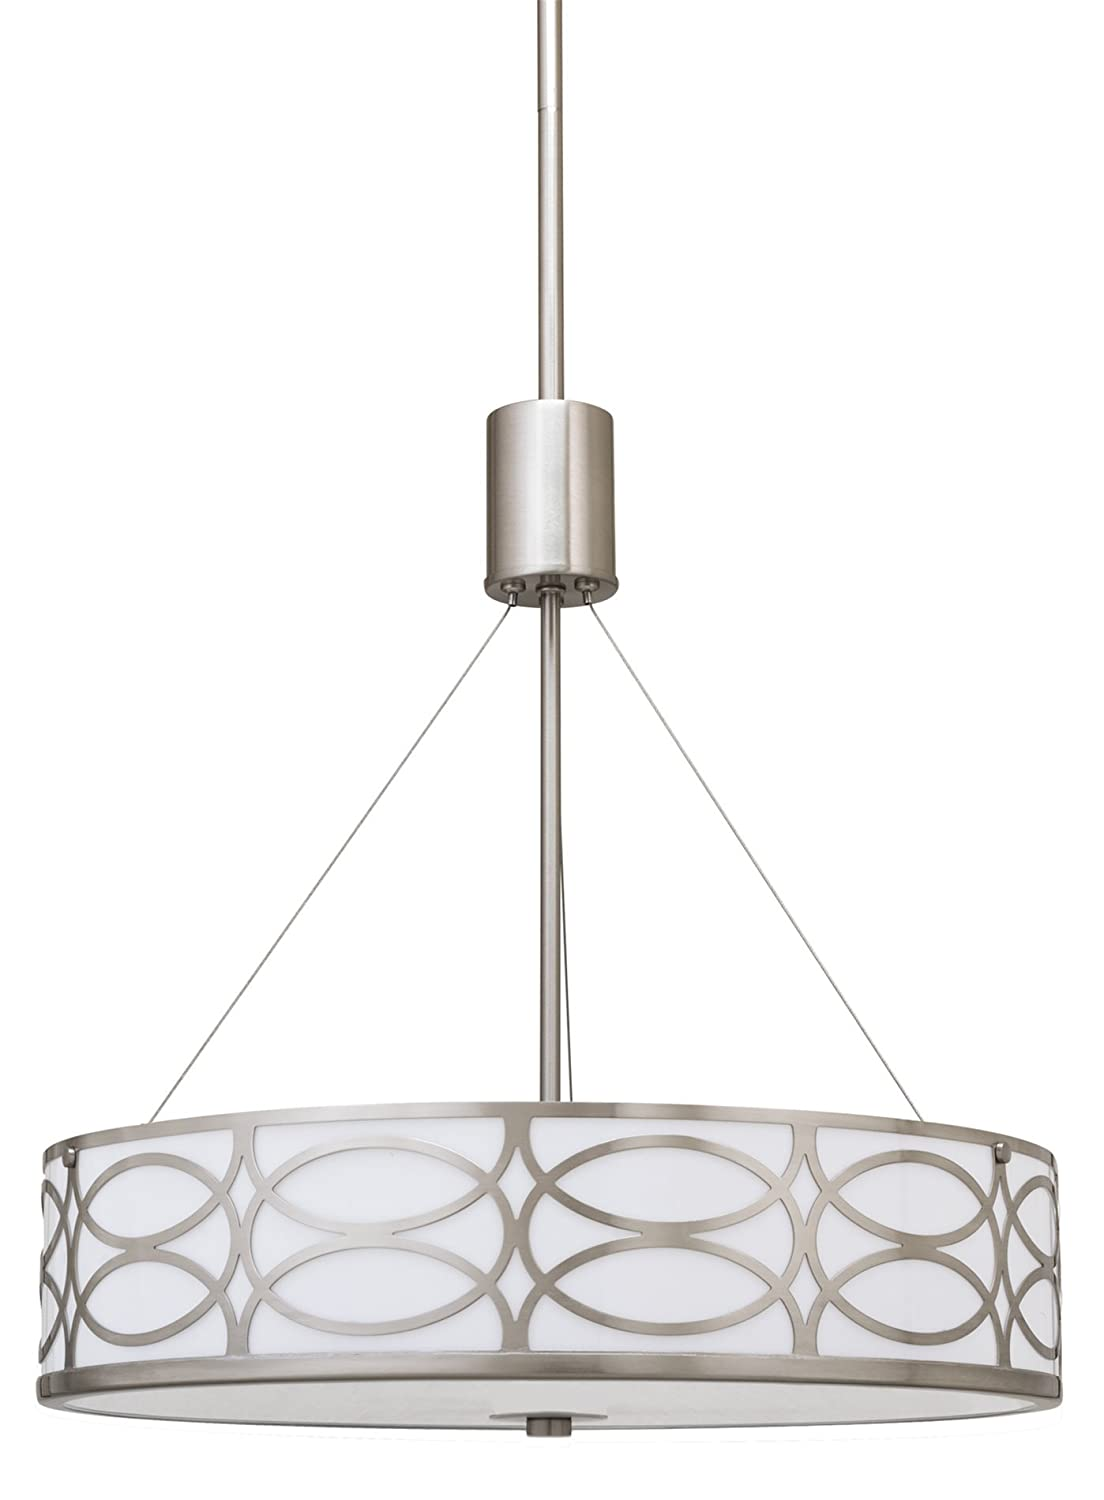 Kira Home Sienna 18 3-Light Metal Drum Chandelier Glass Diffuser, Brushed Nickel Finish